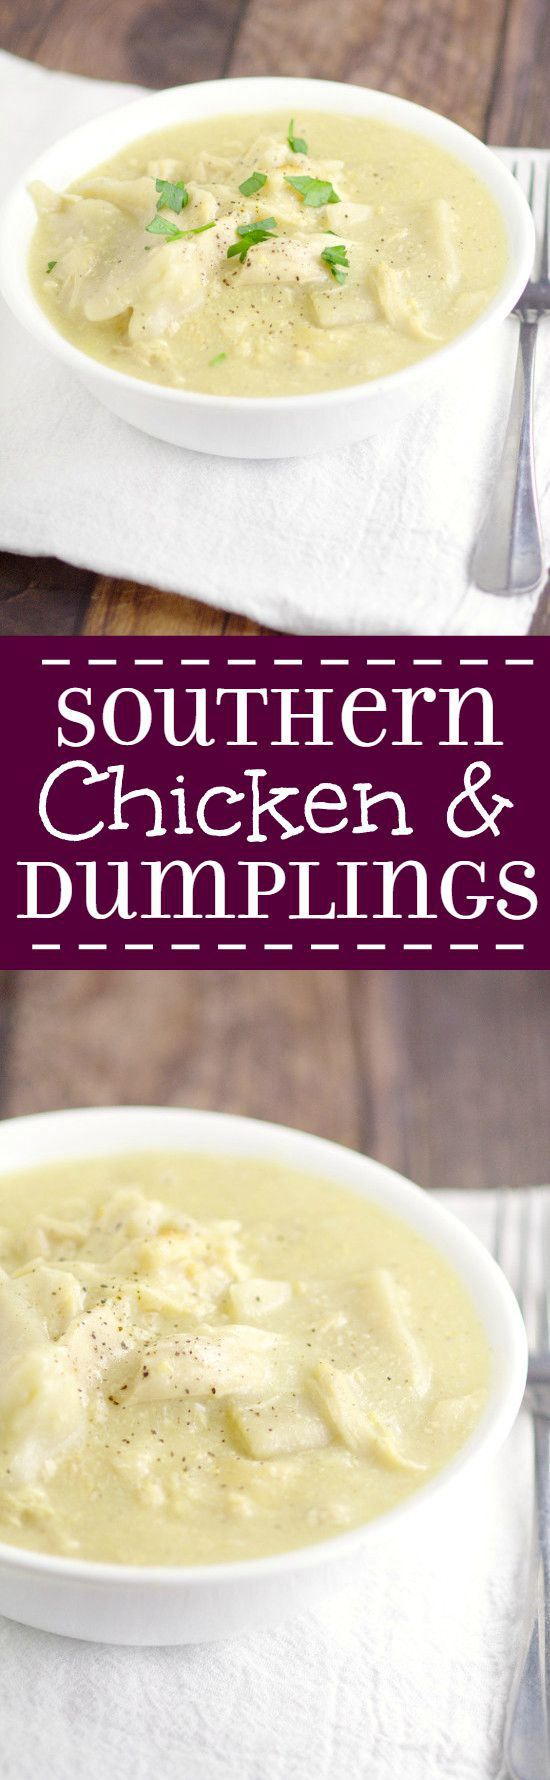 Classic Southern Chicken and Dumplings recipe makes a tasty and filling comfort food dinner idea and recipe for the family, just like grandma's. Can't go wrong with a classic! Seriously the BEST!